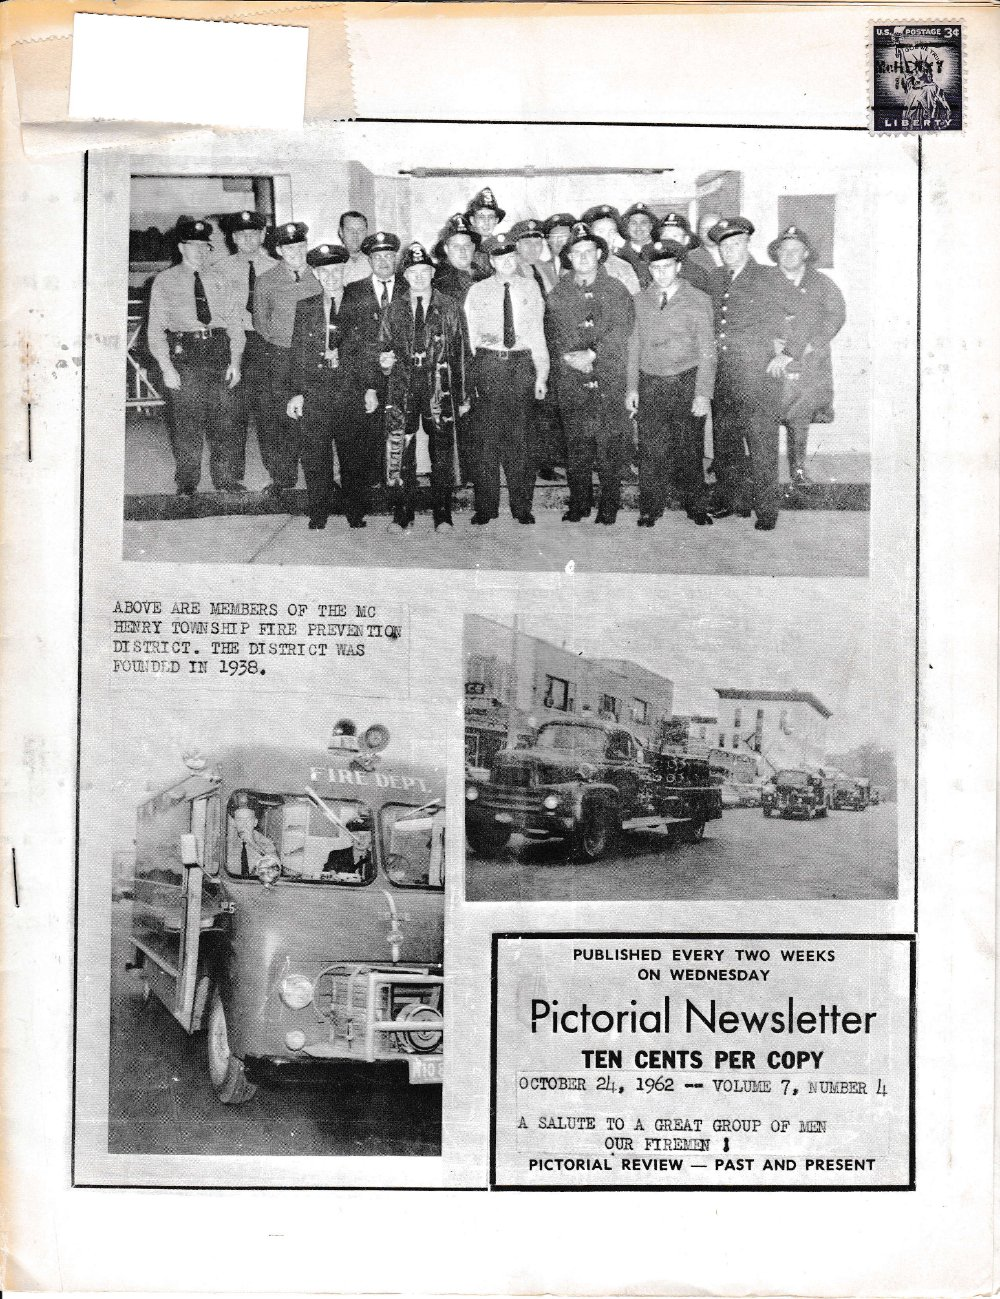 The Pictorial Newsletter: October 24, 1962